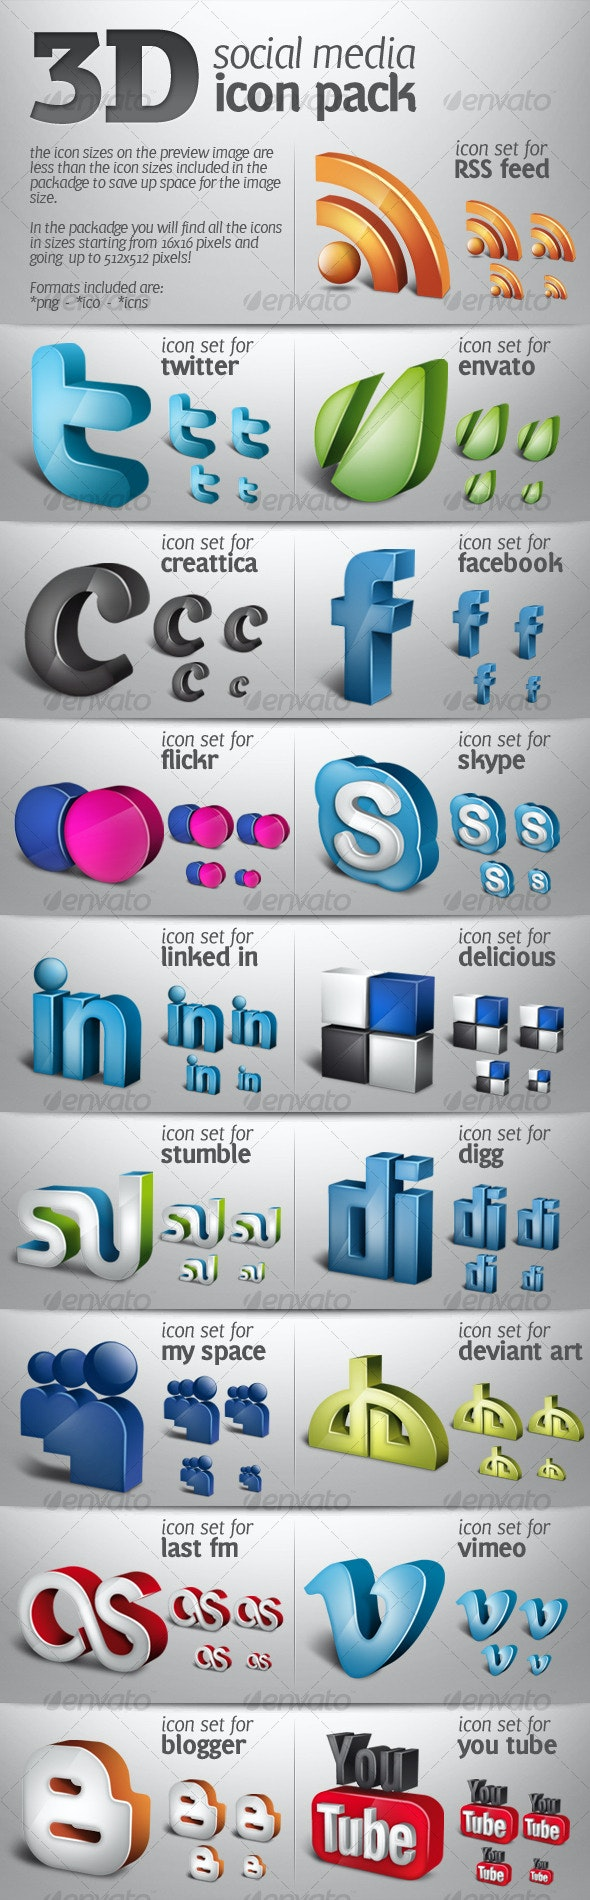 3D social media icons pack 01 - Miscellaneous Icons